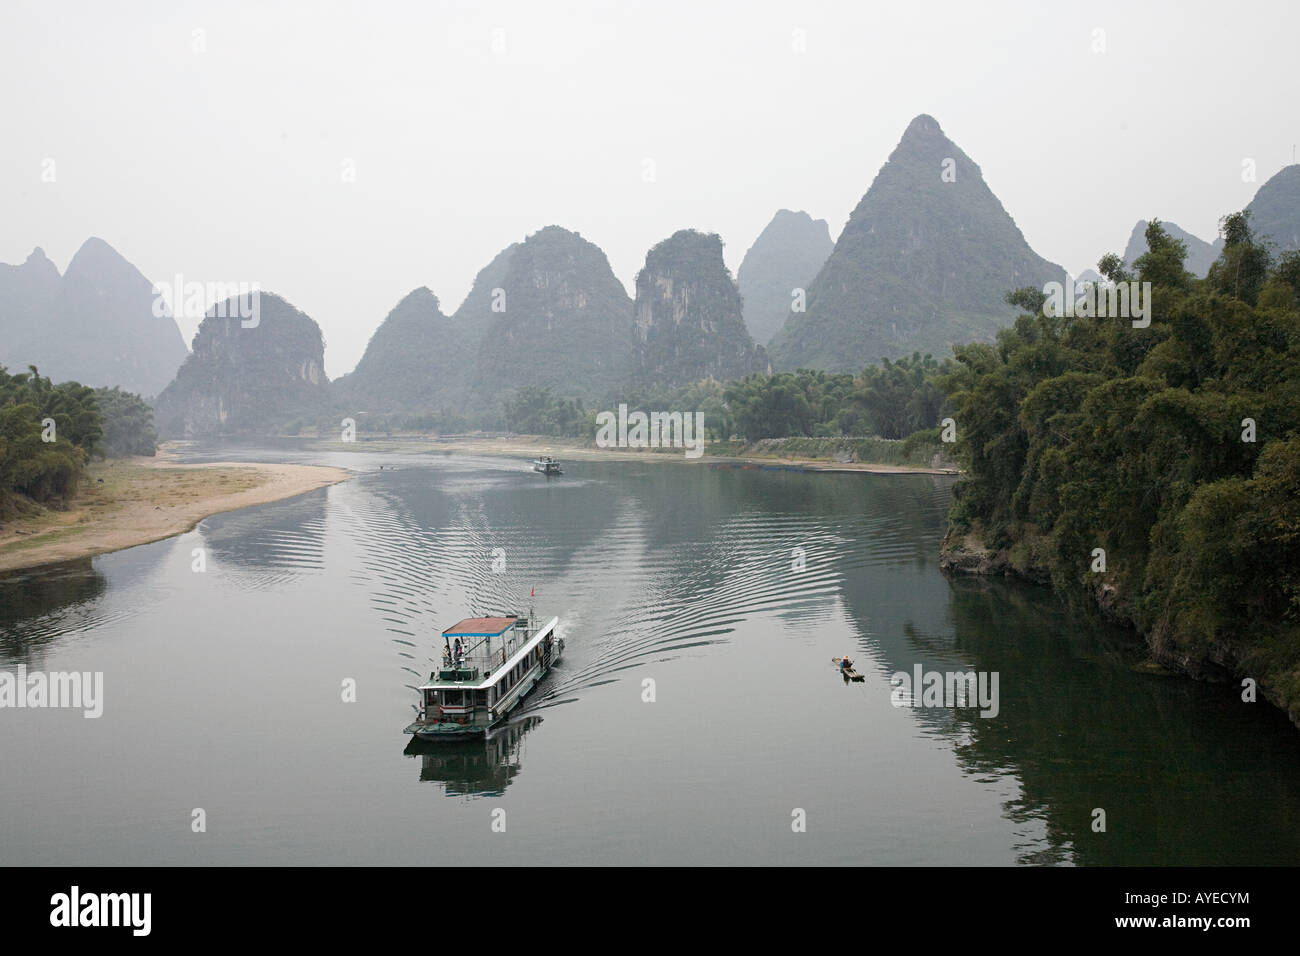 Boat on lijiang river Stock Photo